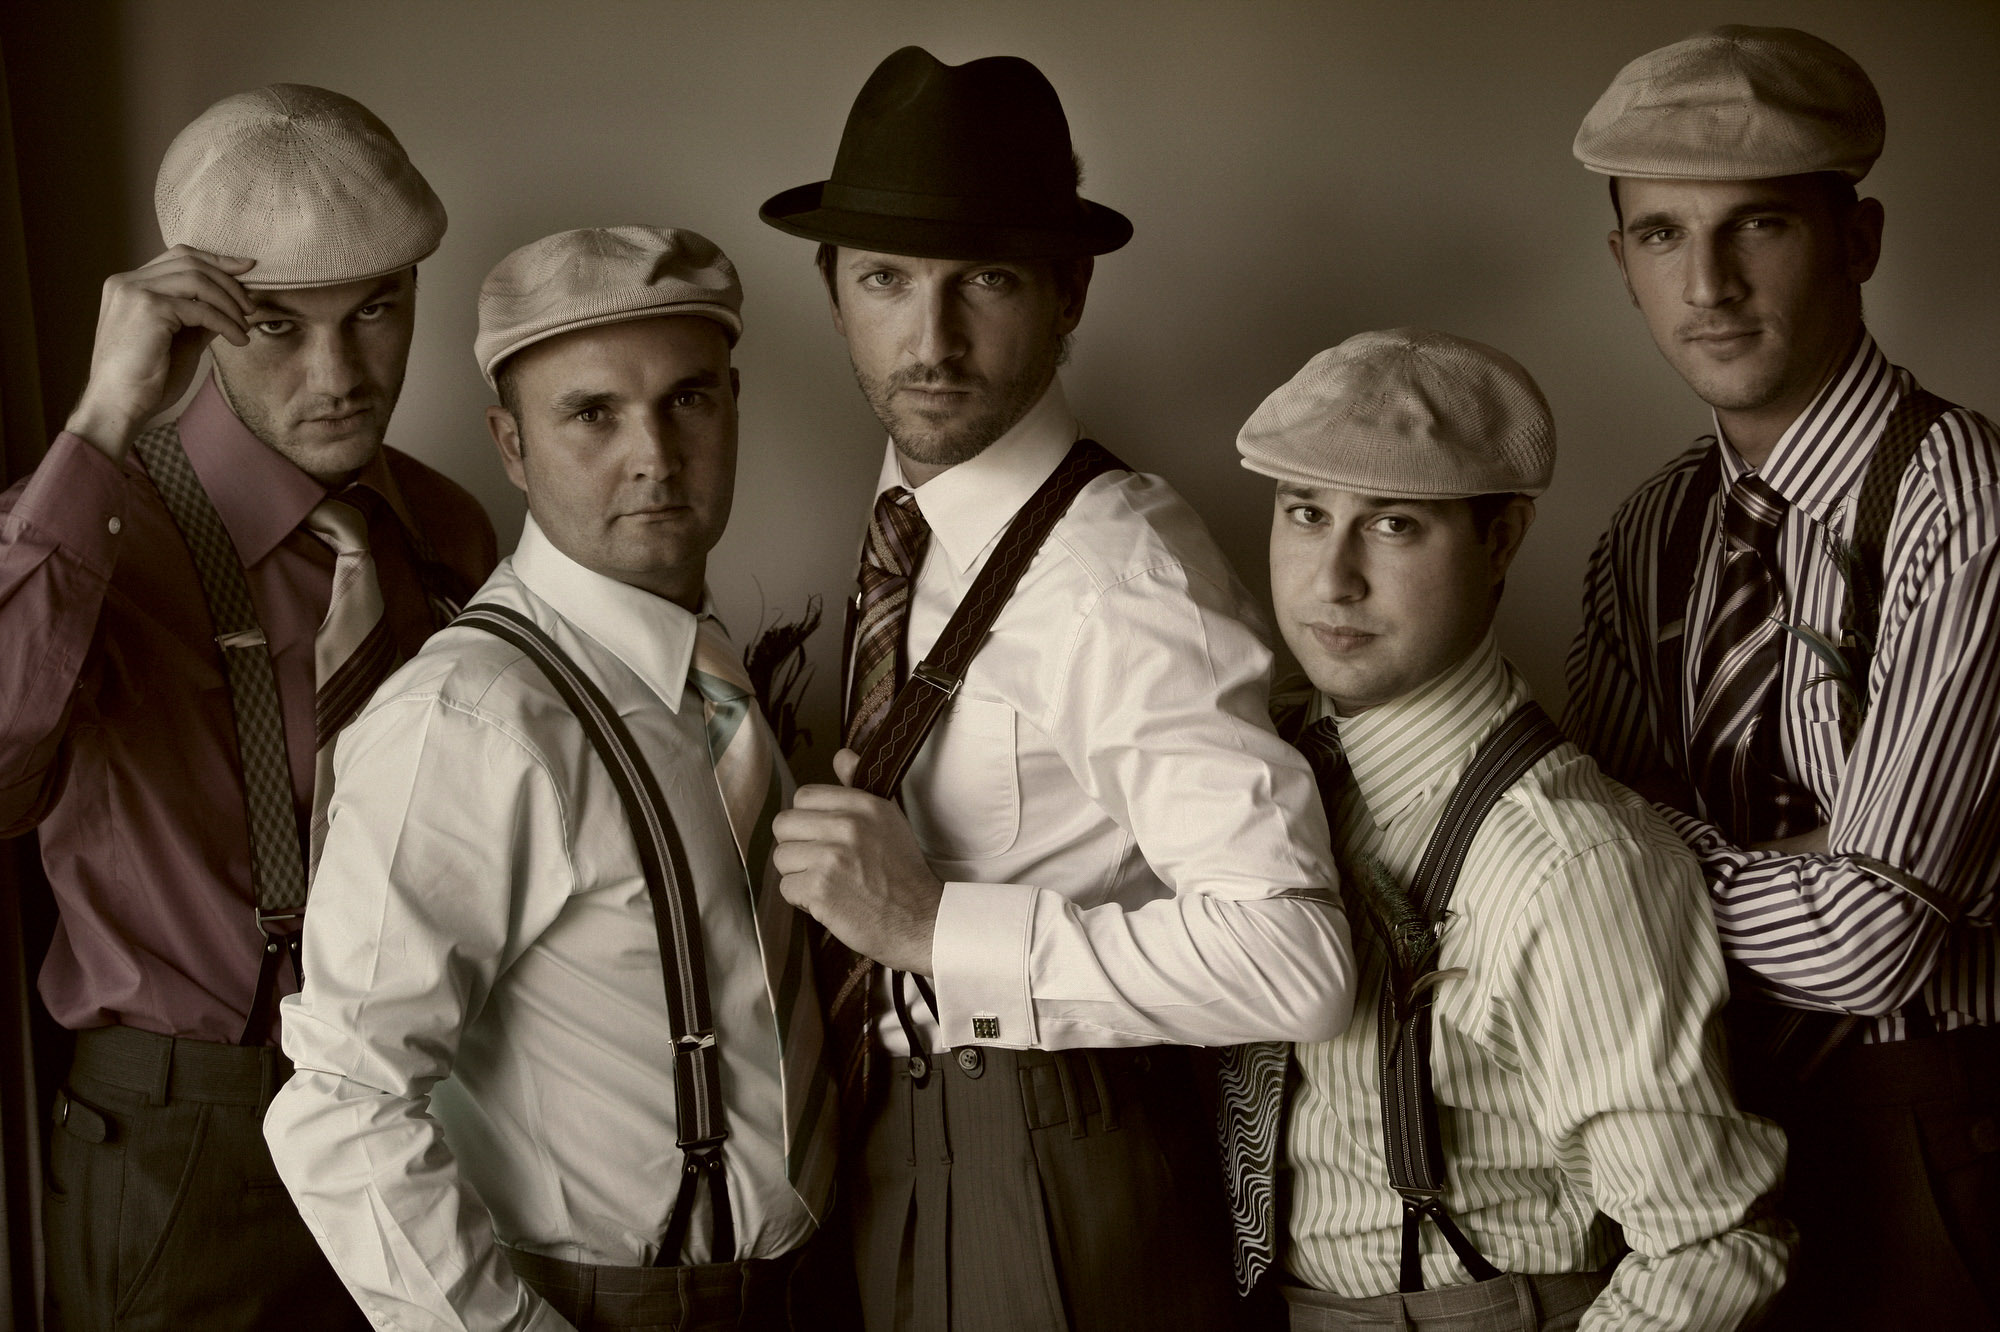 Retro group shot of groom and groomsment  by Jerry Ghionis luxury wedding photographer